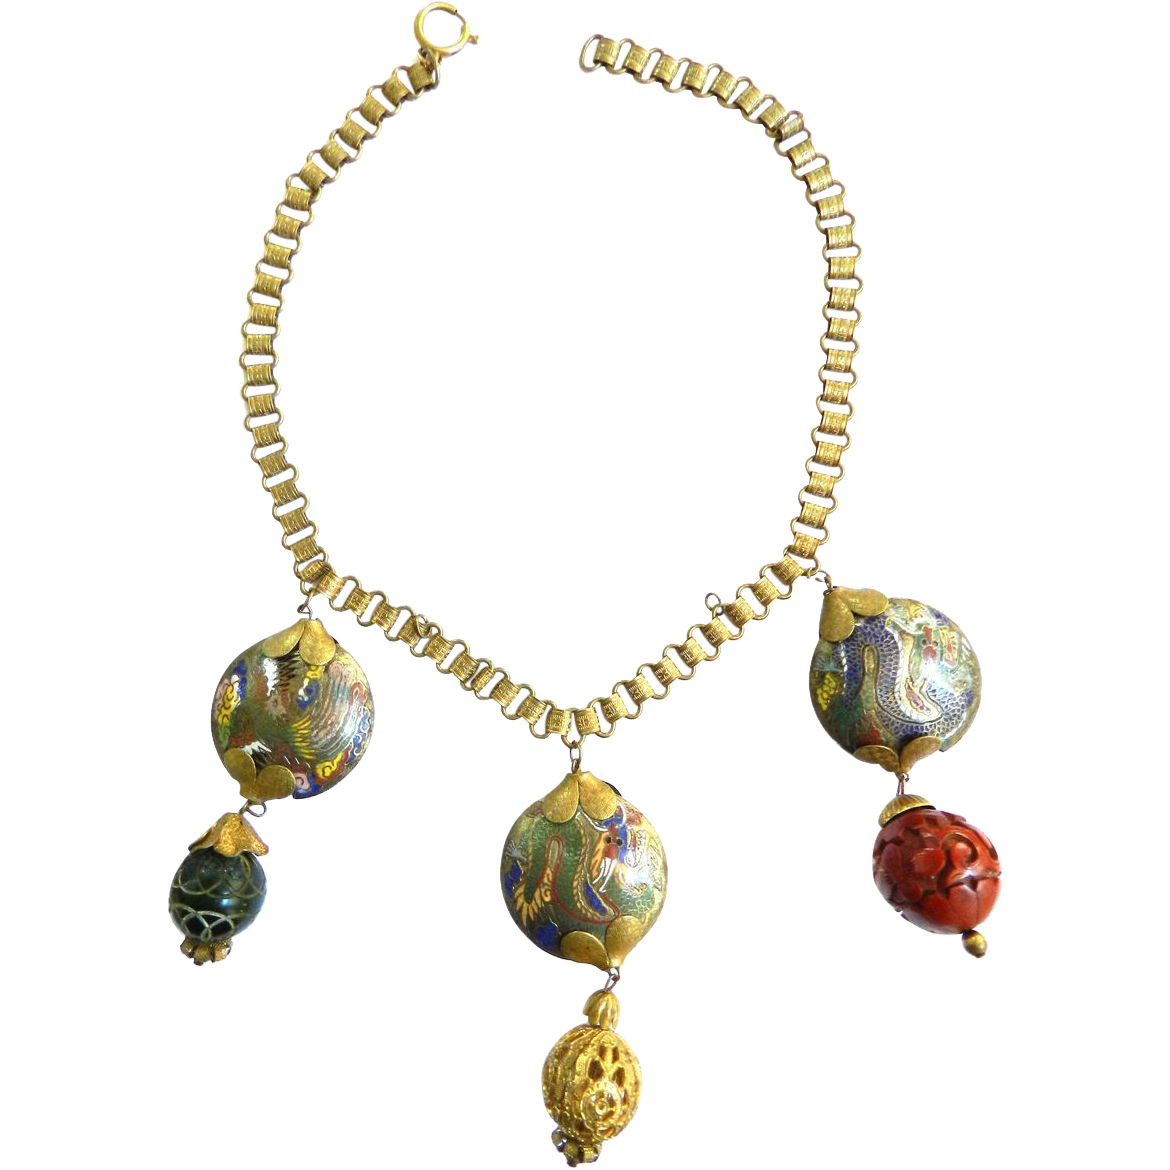 Vintage Chinese Hand Painted Drippy Book Chain Charm Necklace